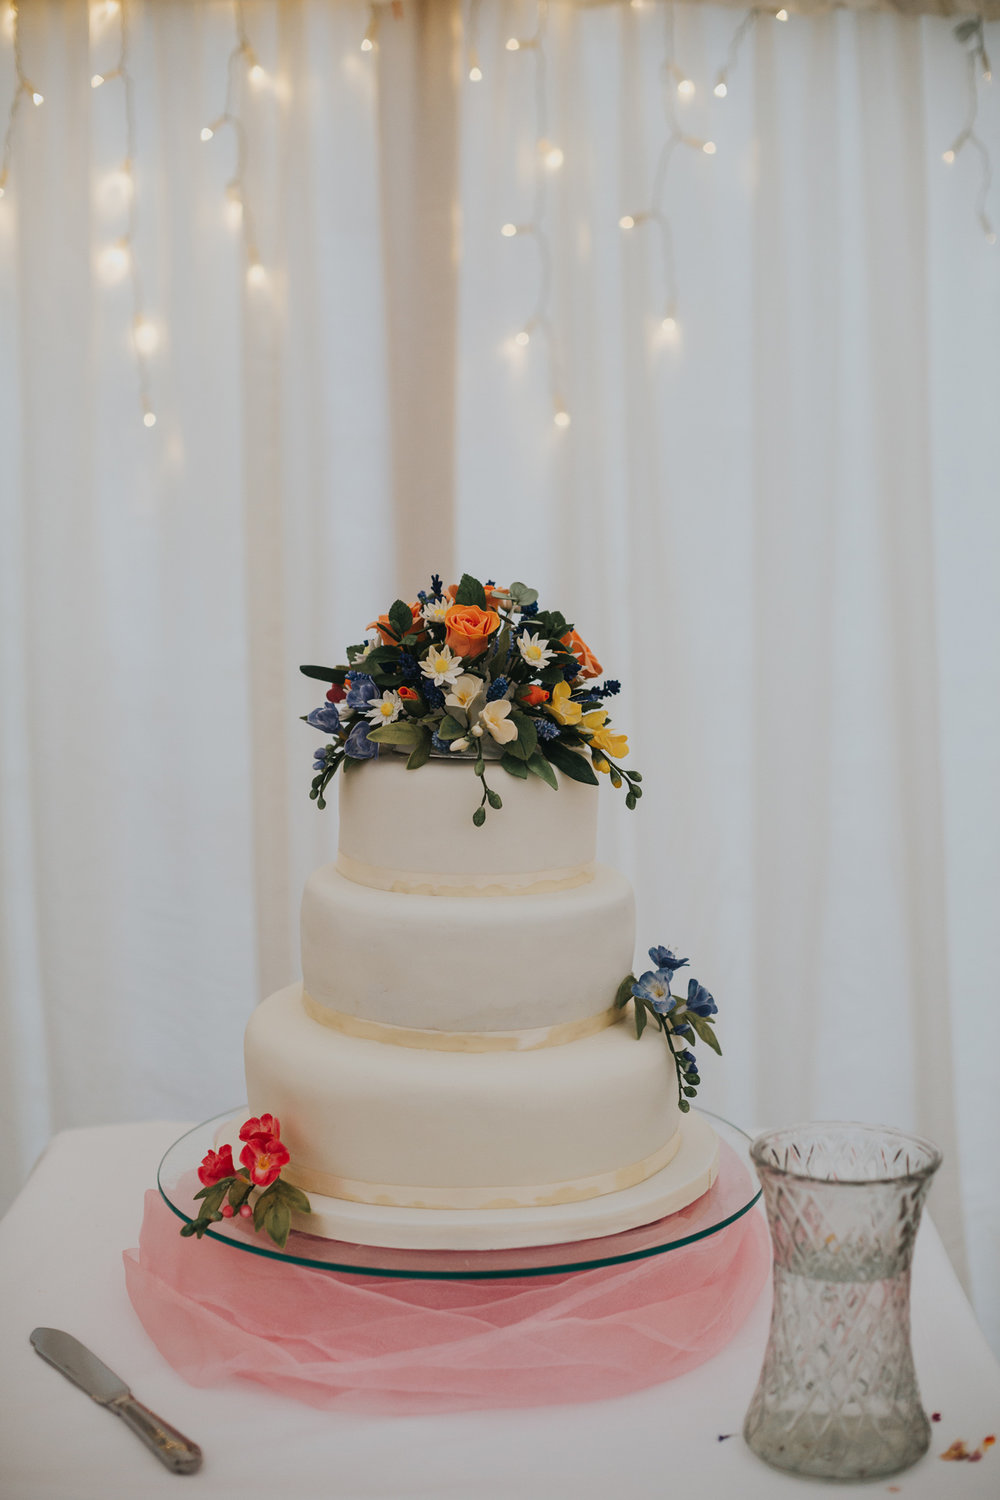 Wedding cake decorated with flowers.